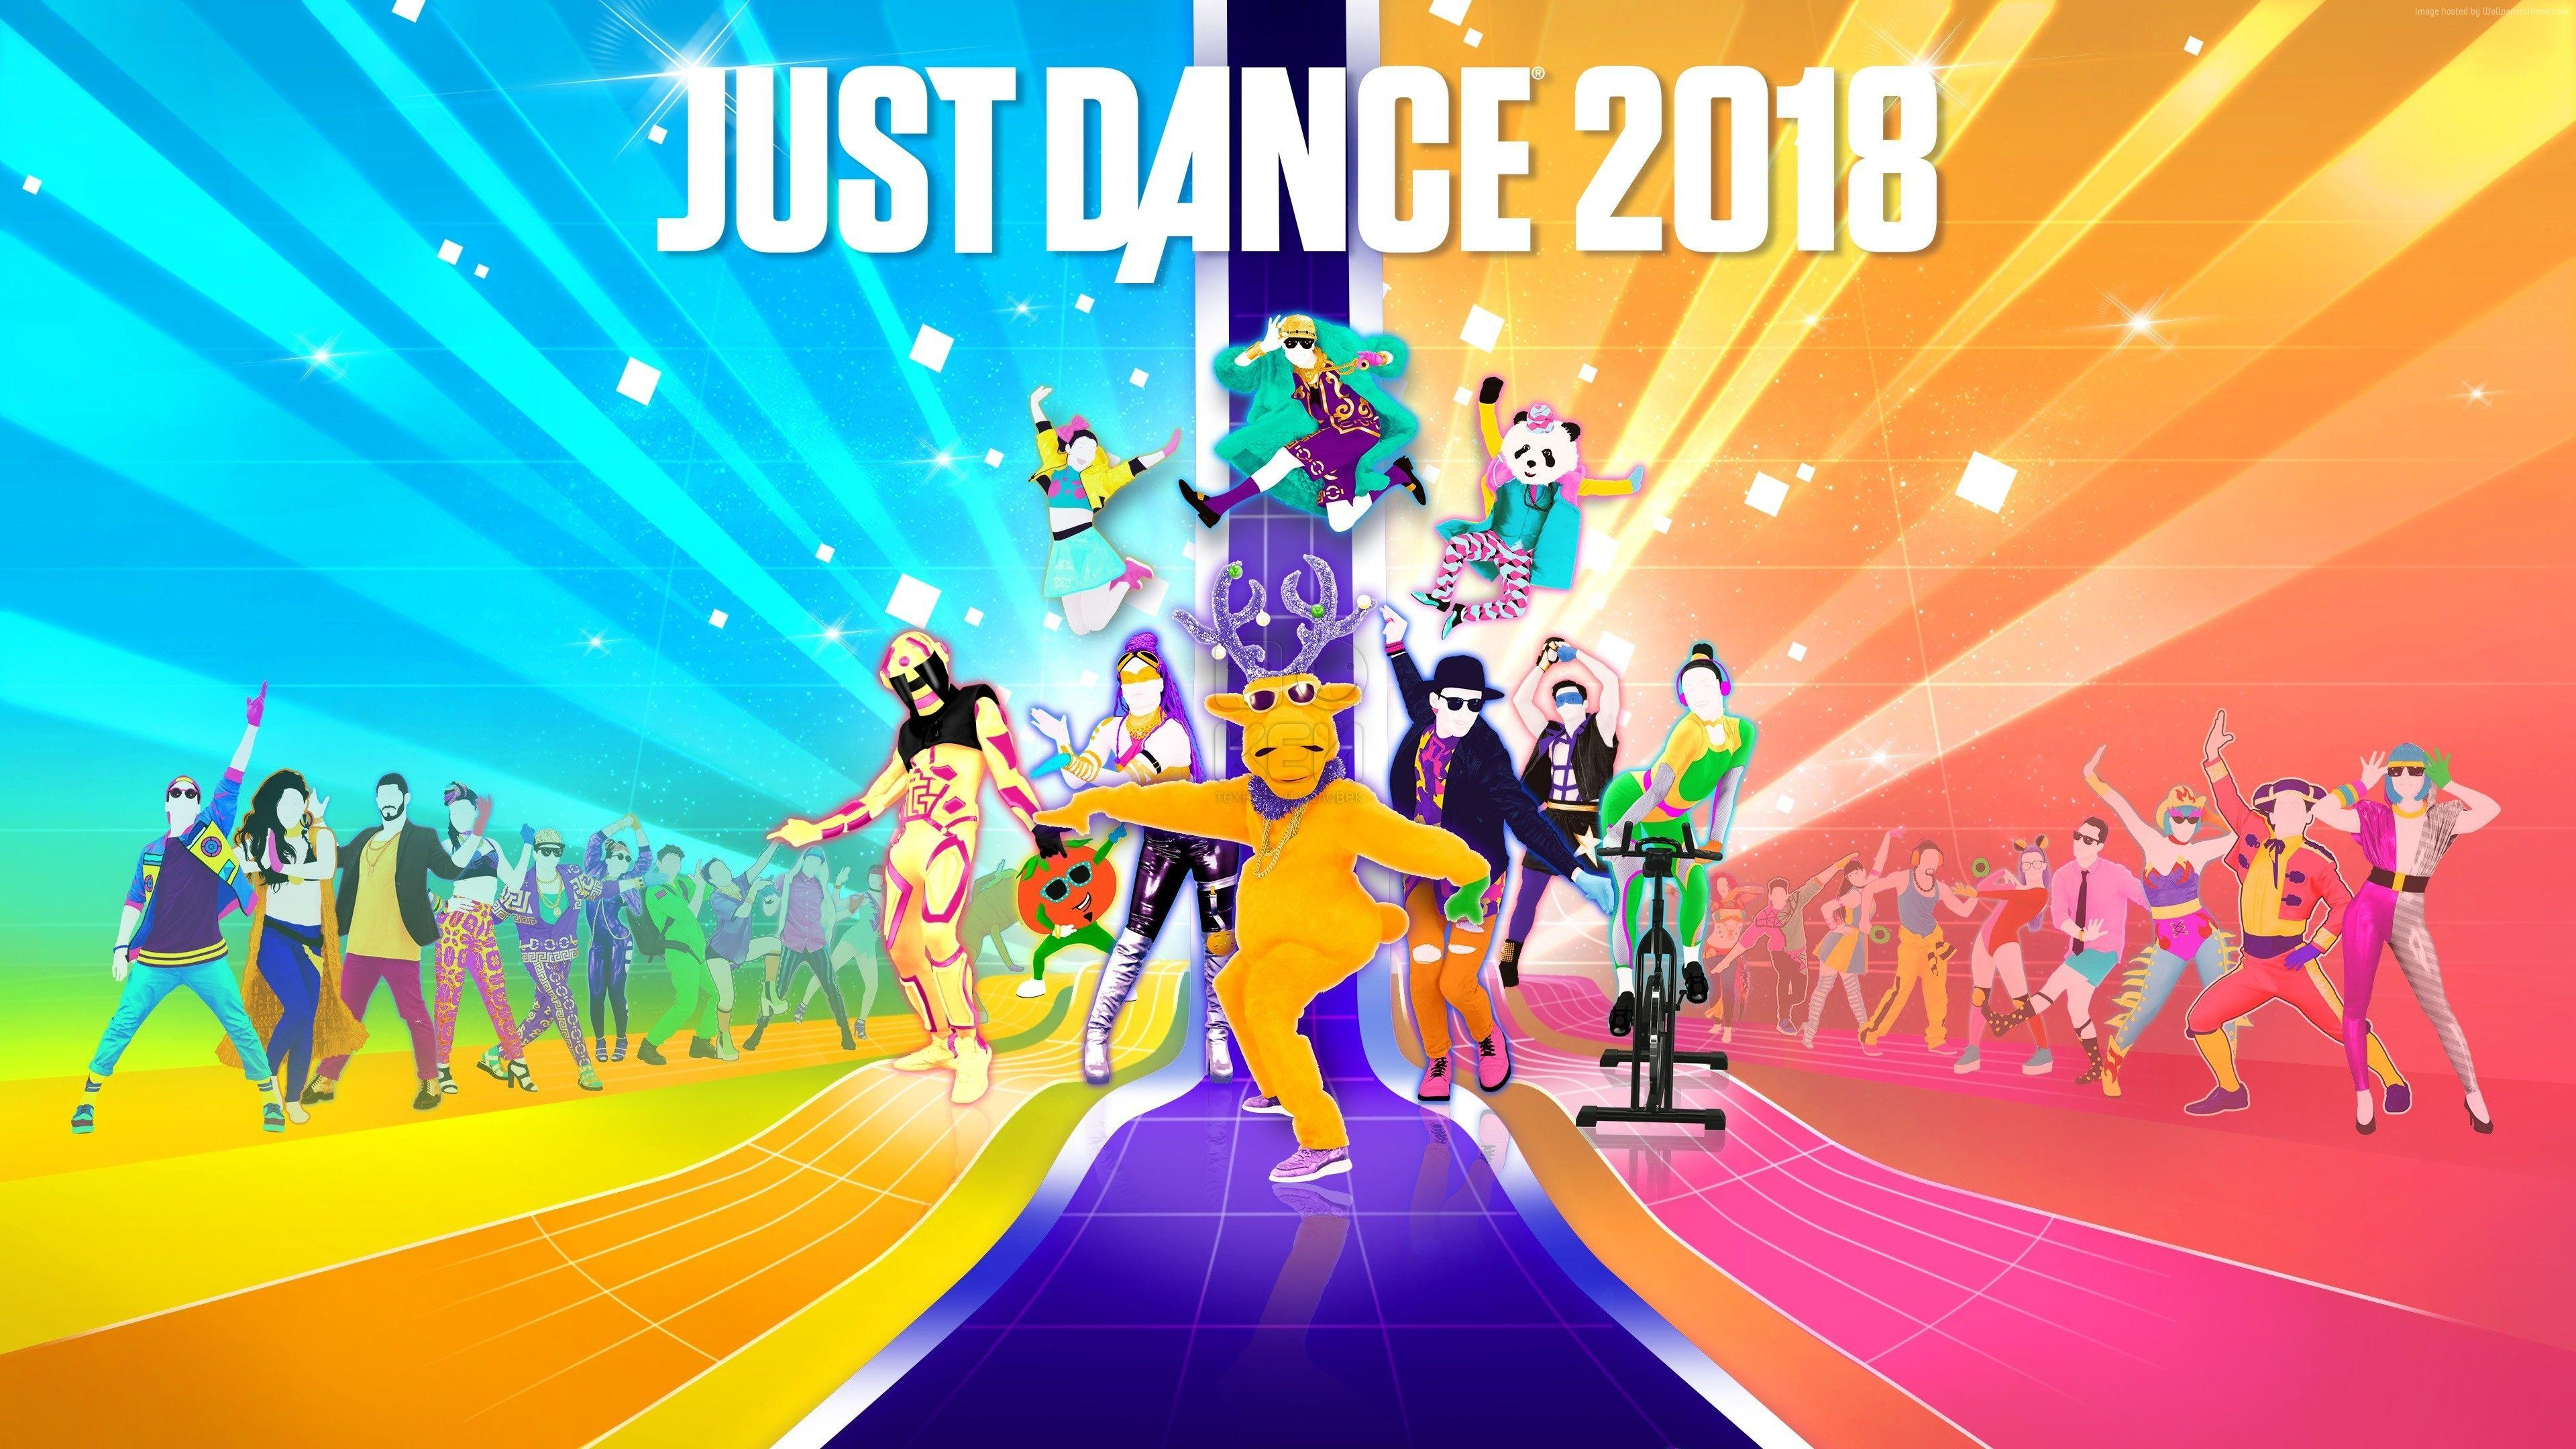 Just Dance Wallpapers   Top Just Dance Backgrounds 3840x2160